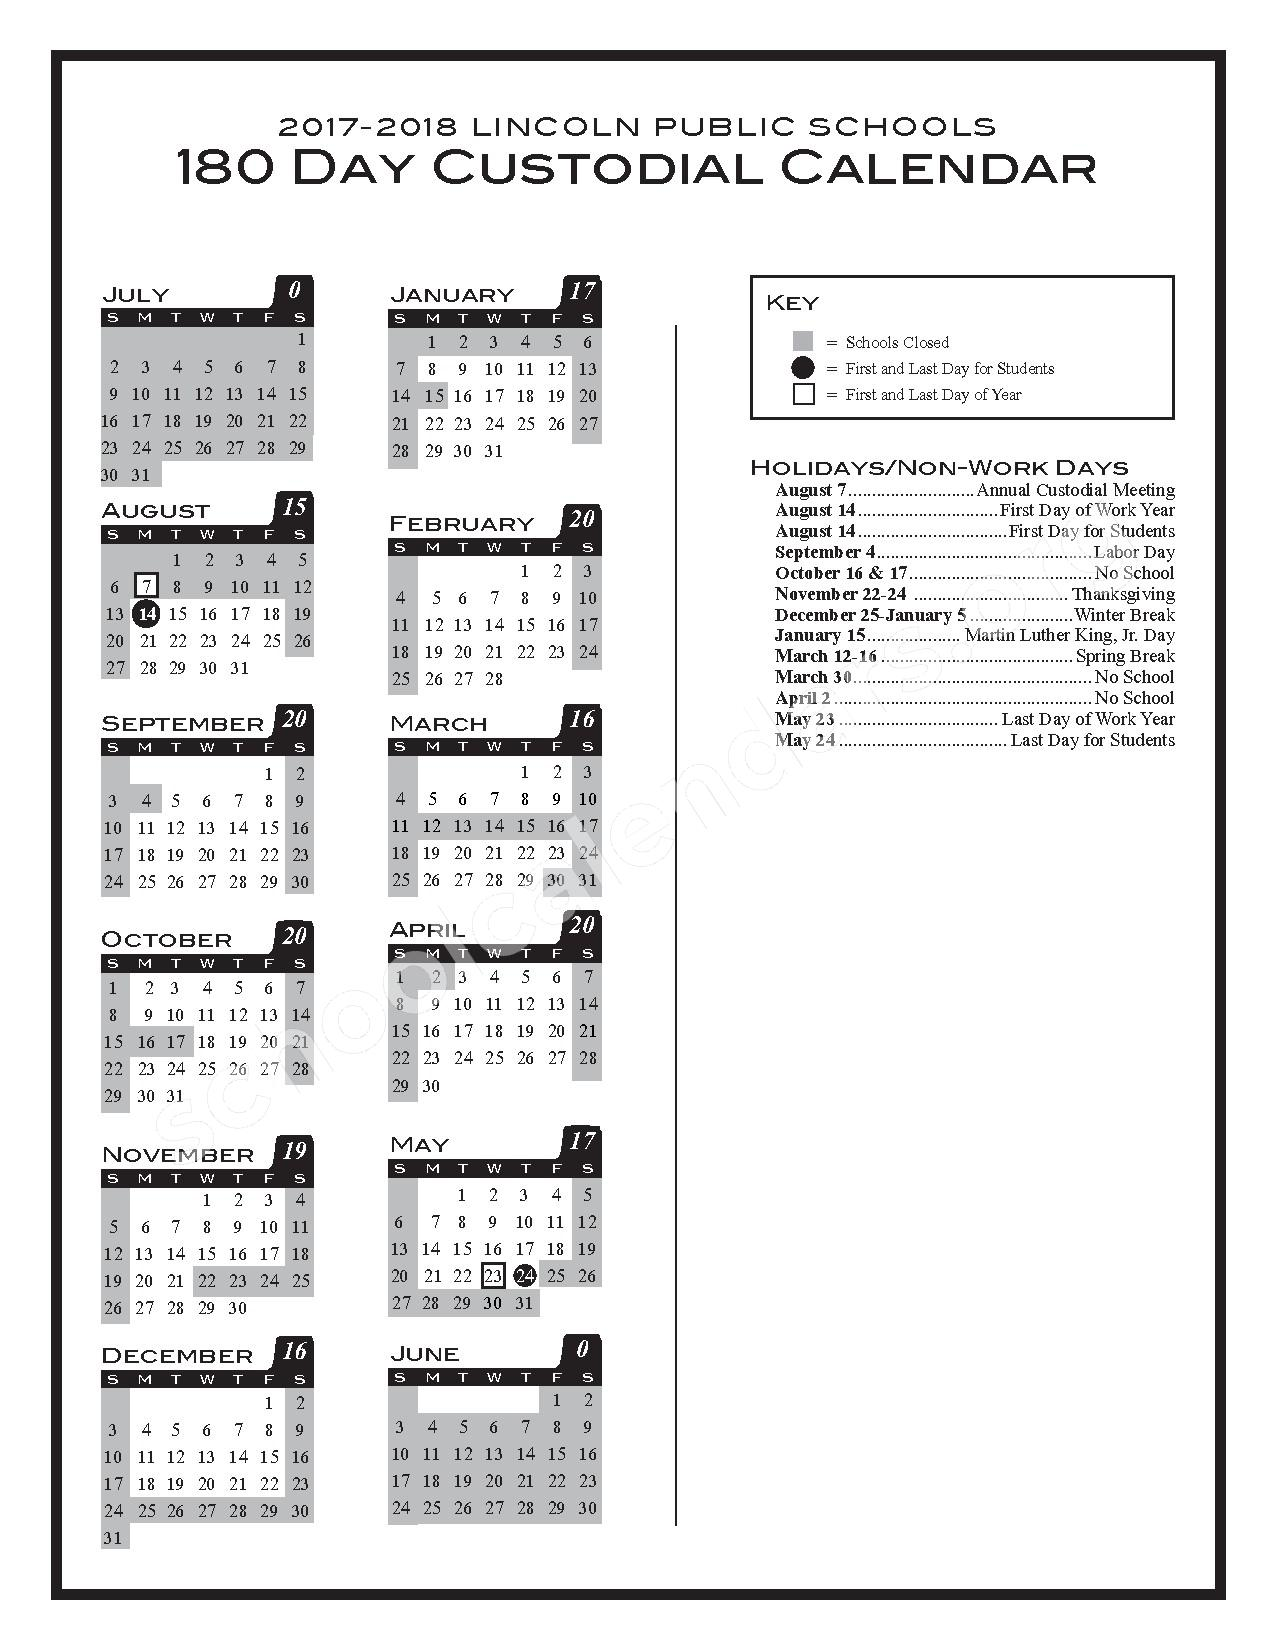 2017 - 2018 180-day Custodial Calendar – Lincoln Public Schools – page 1